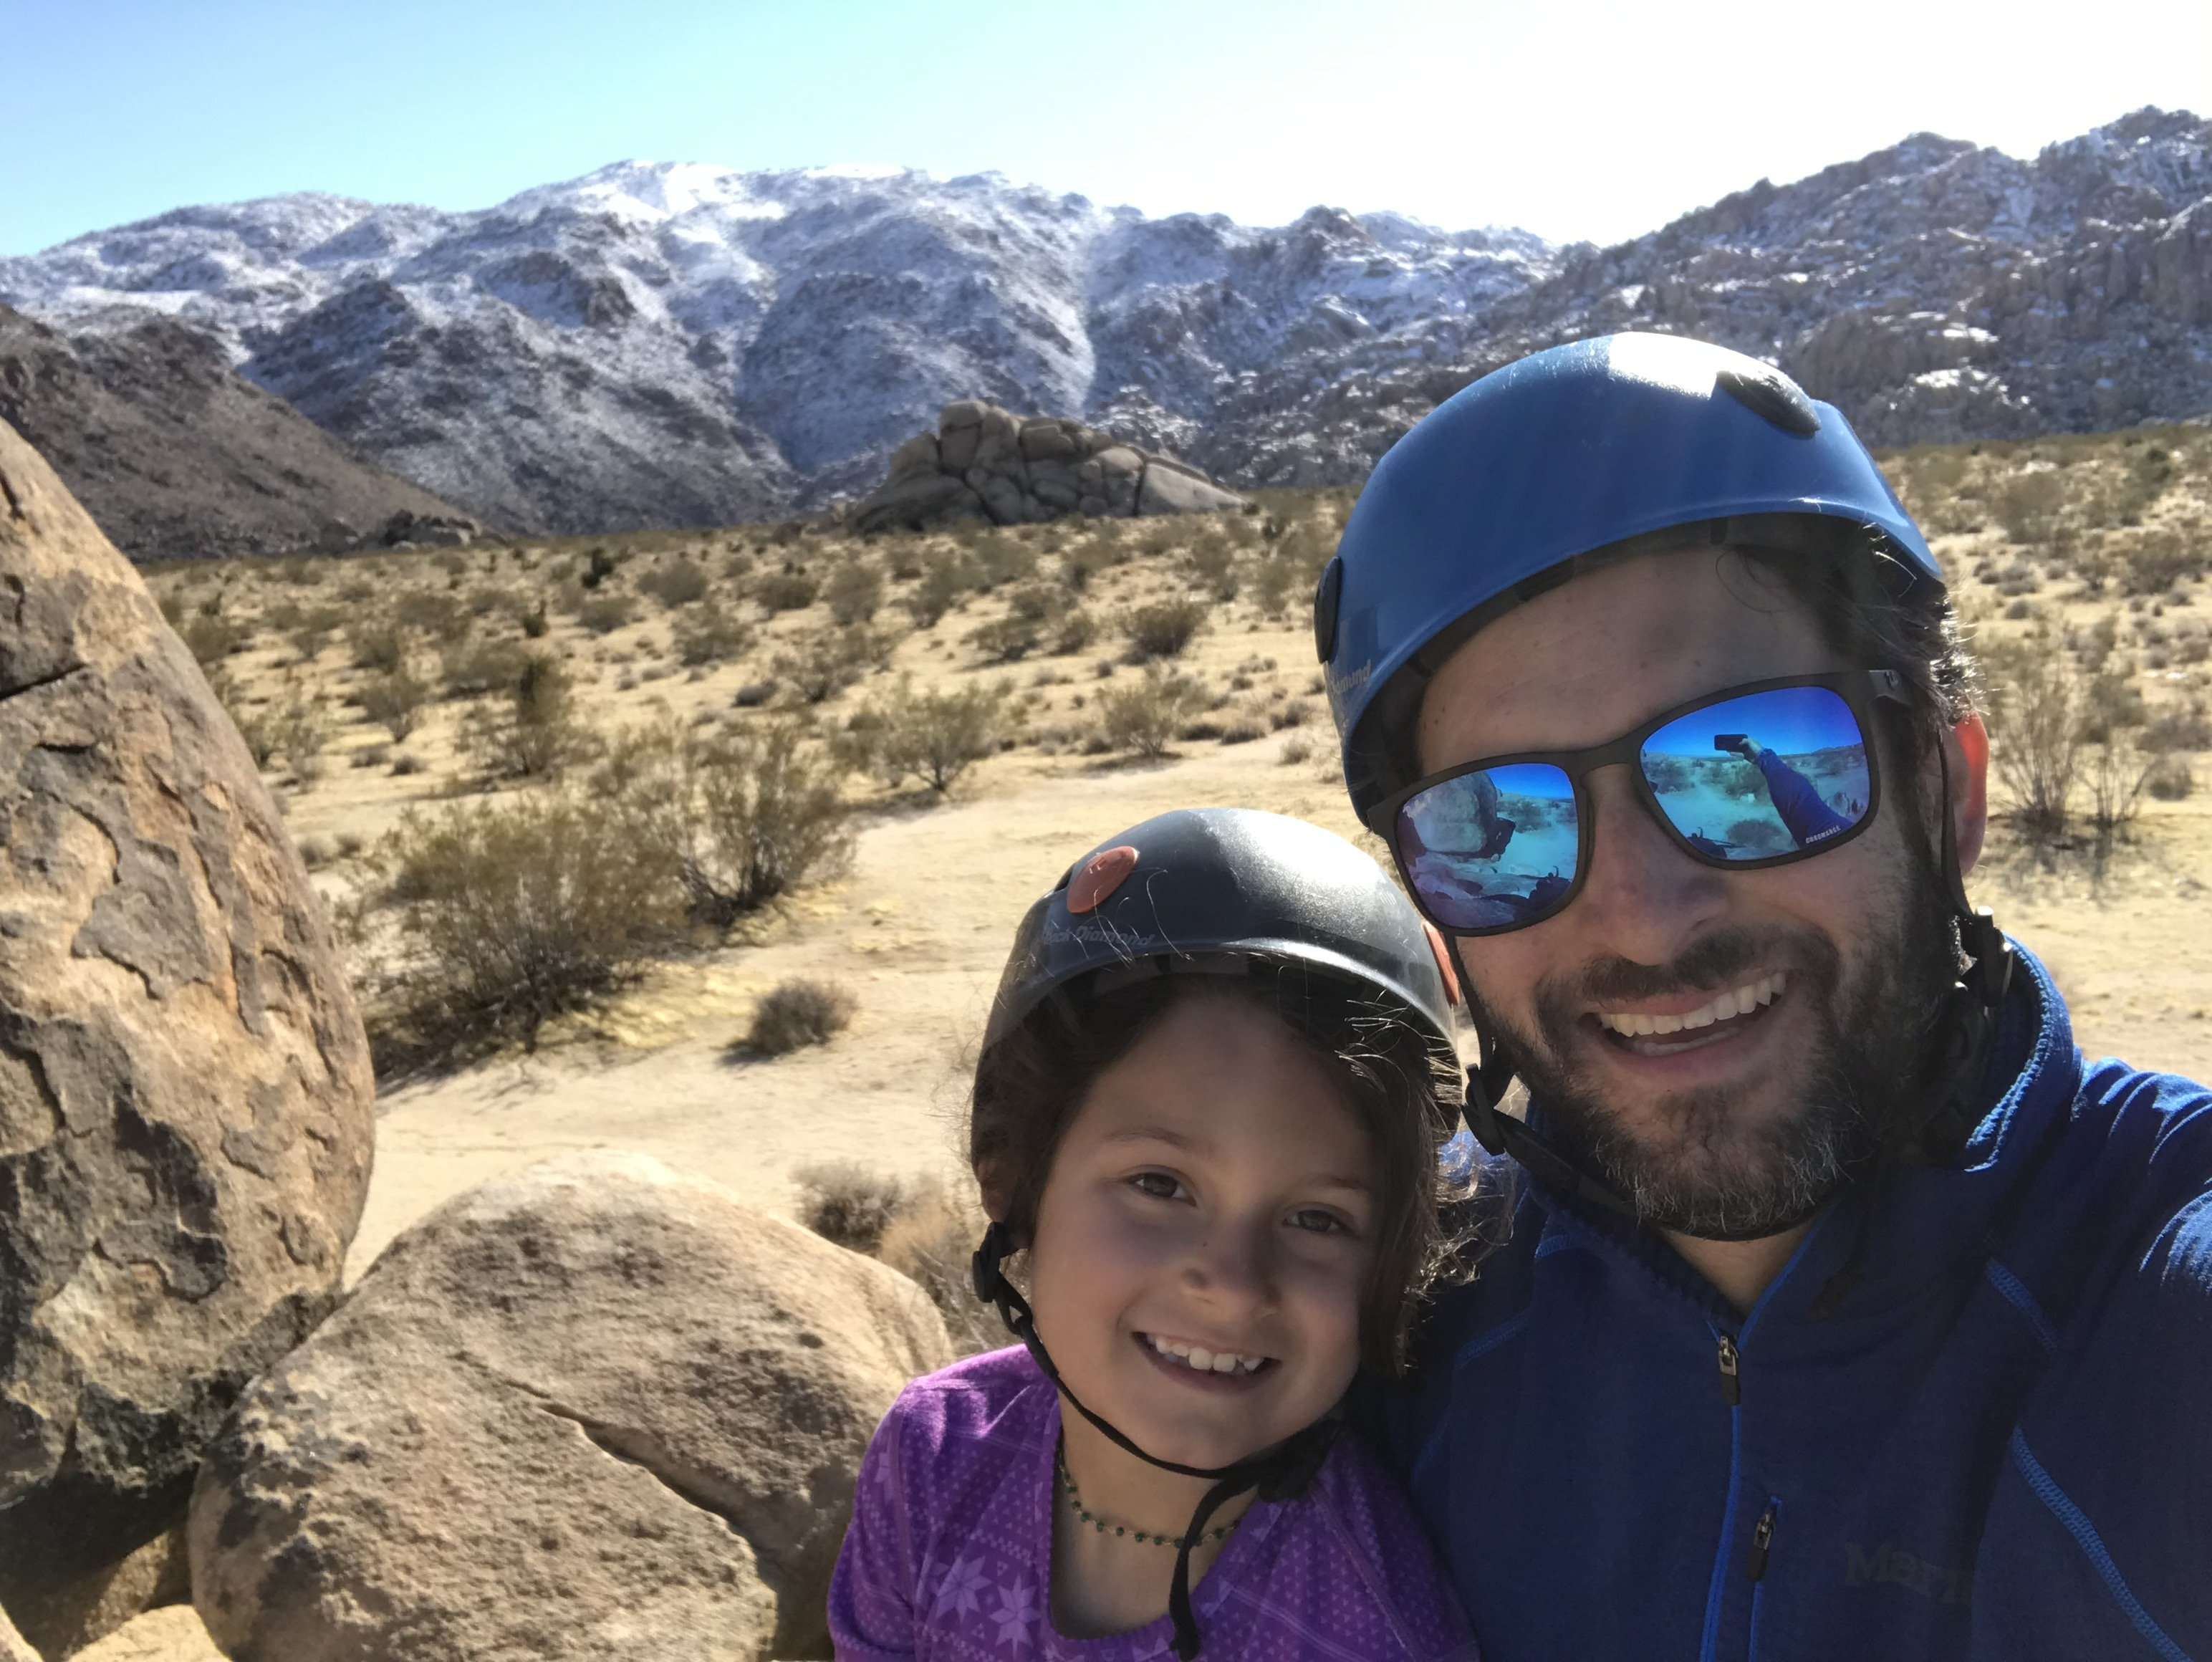 NEBC Mmeber Benjamin Pariser and his daughter at Joshua Tree